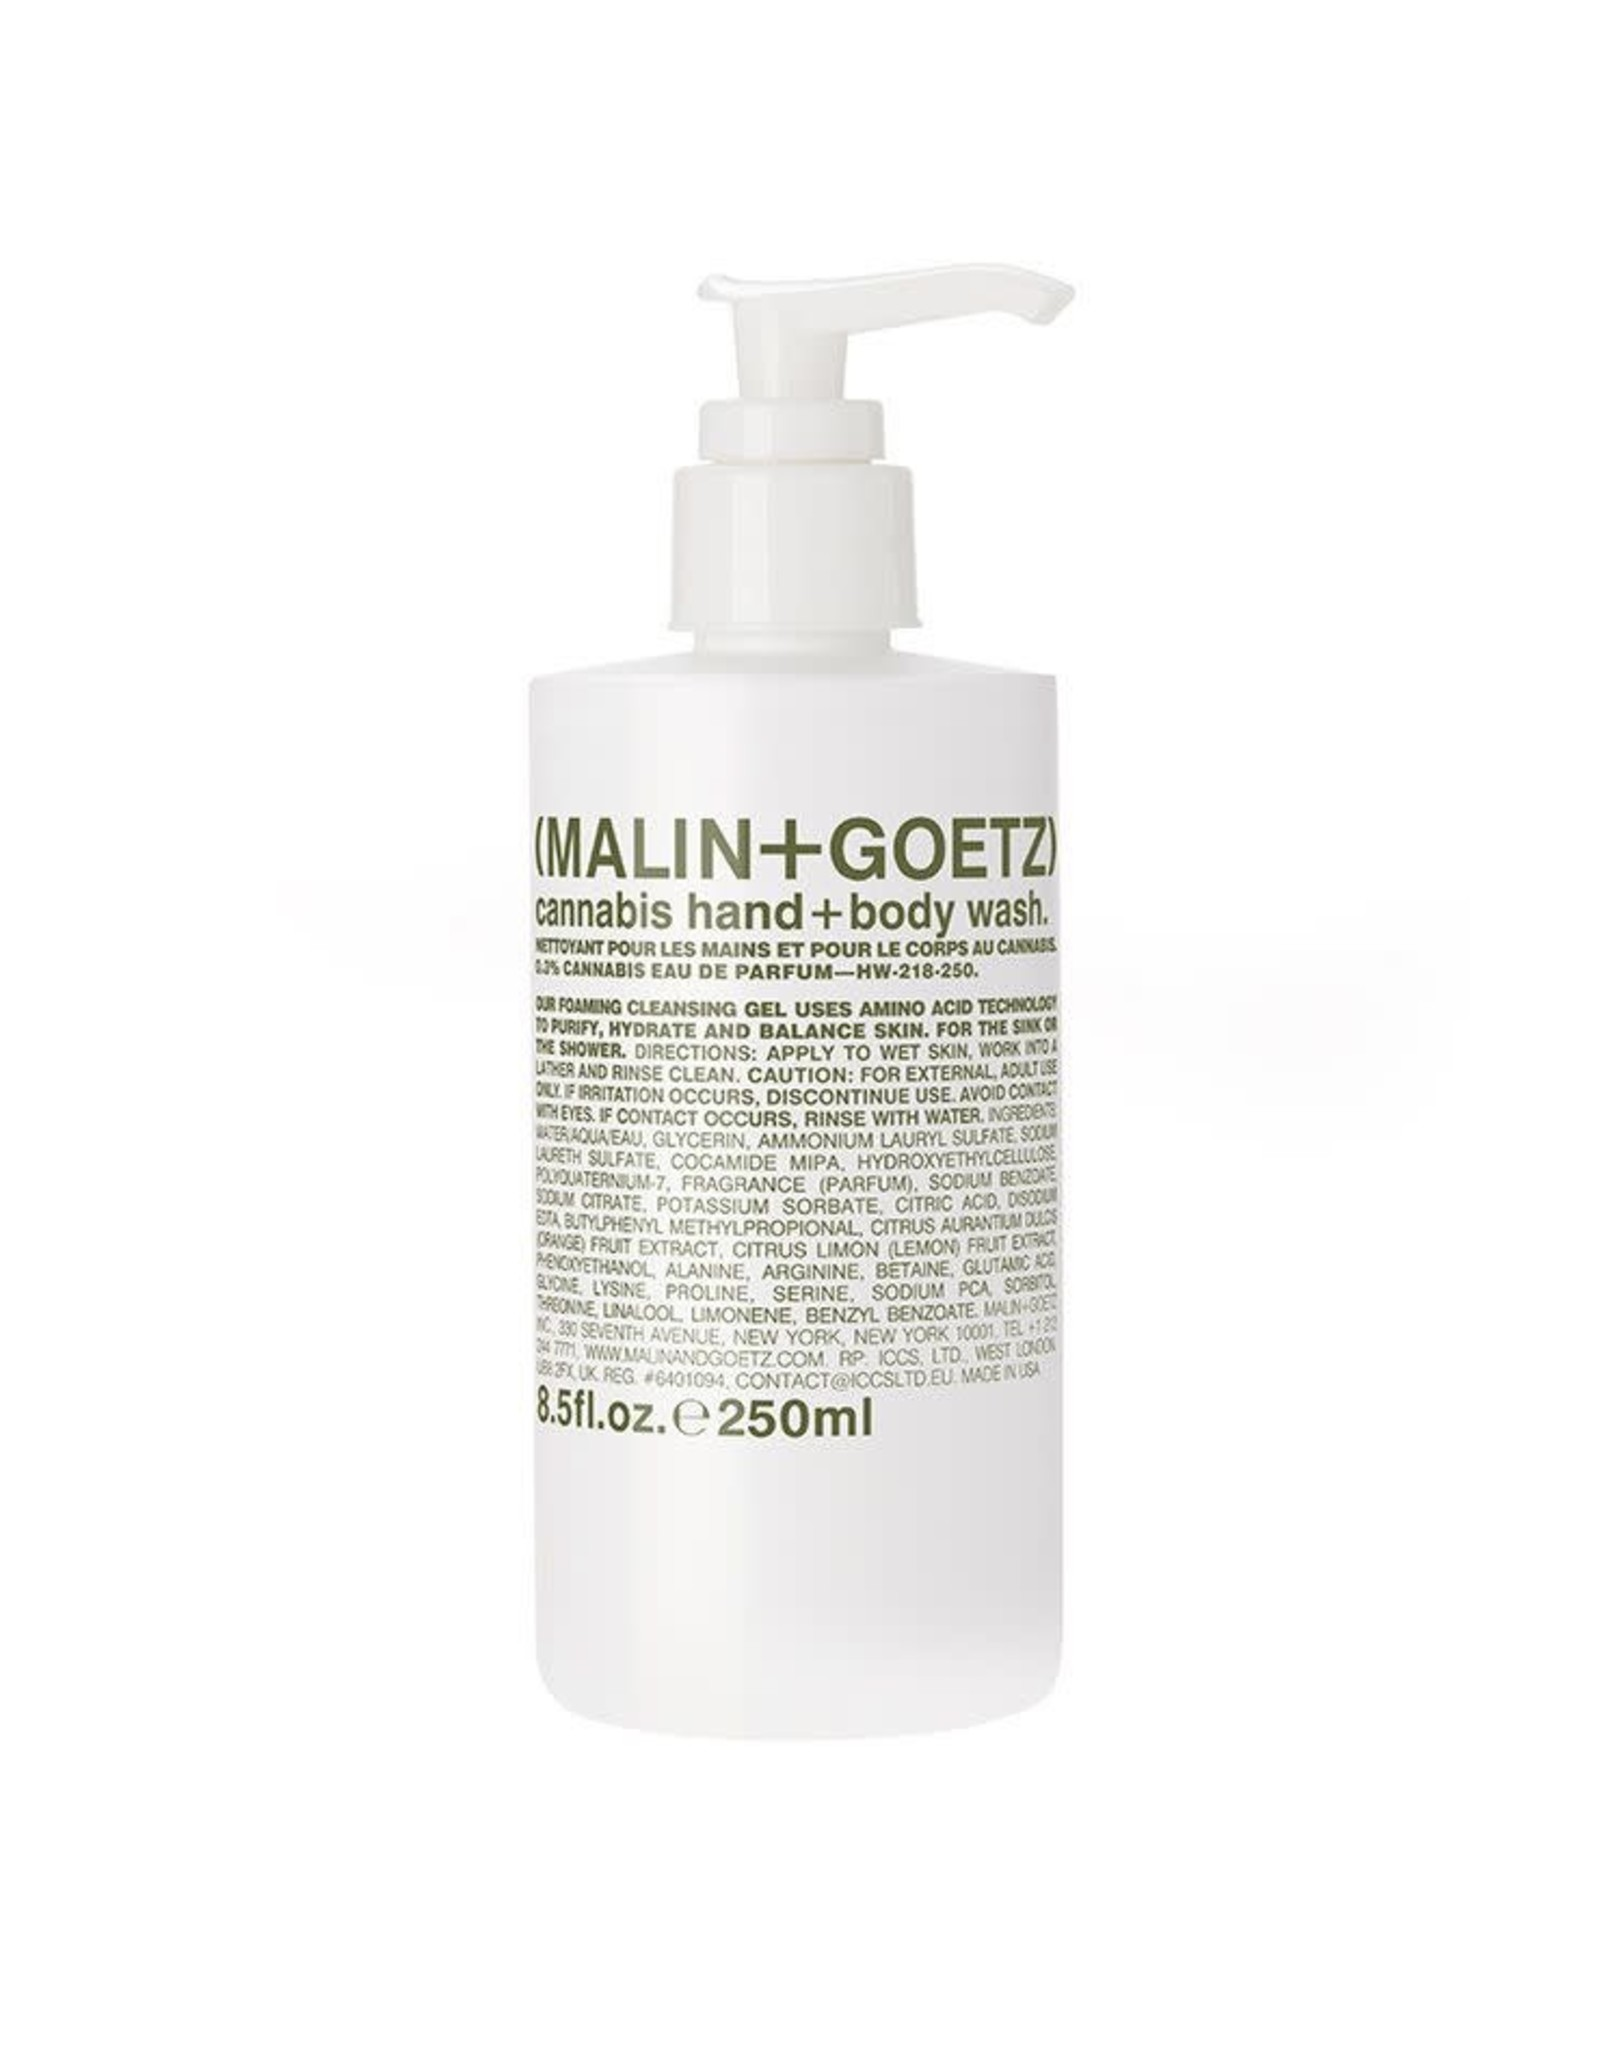 Cannabis Hand and Body Wash by MALIN+GOETZ